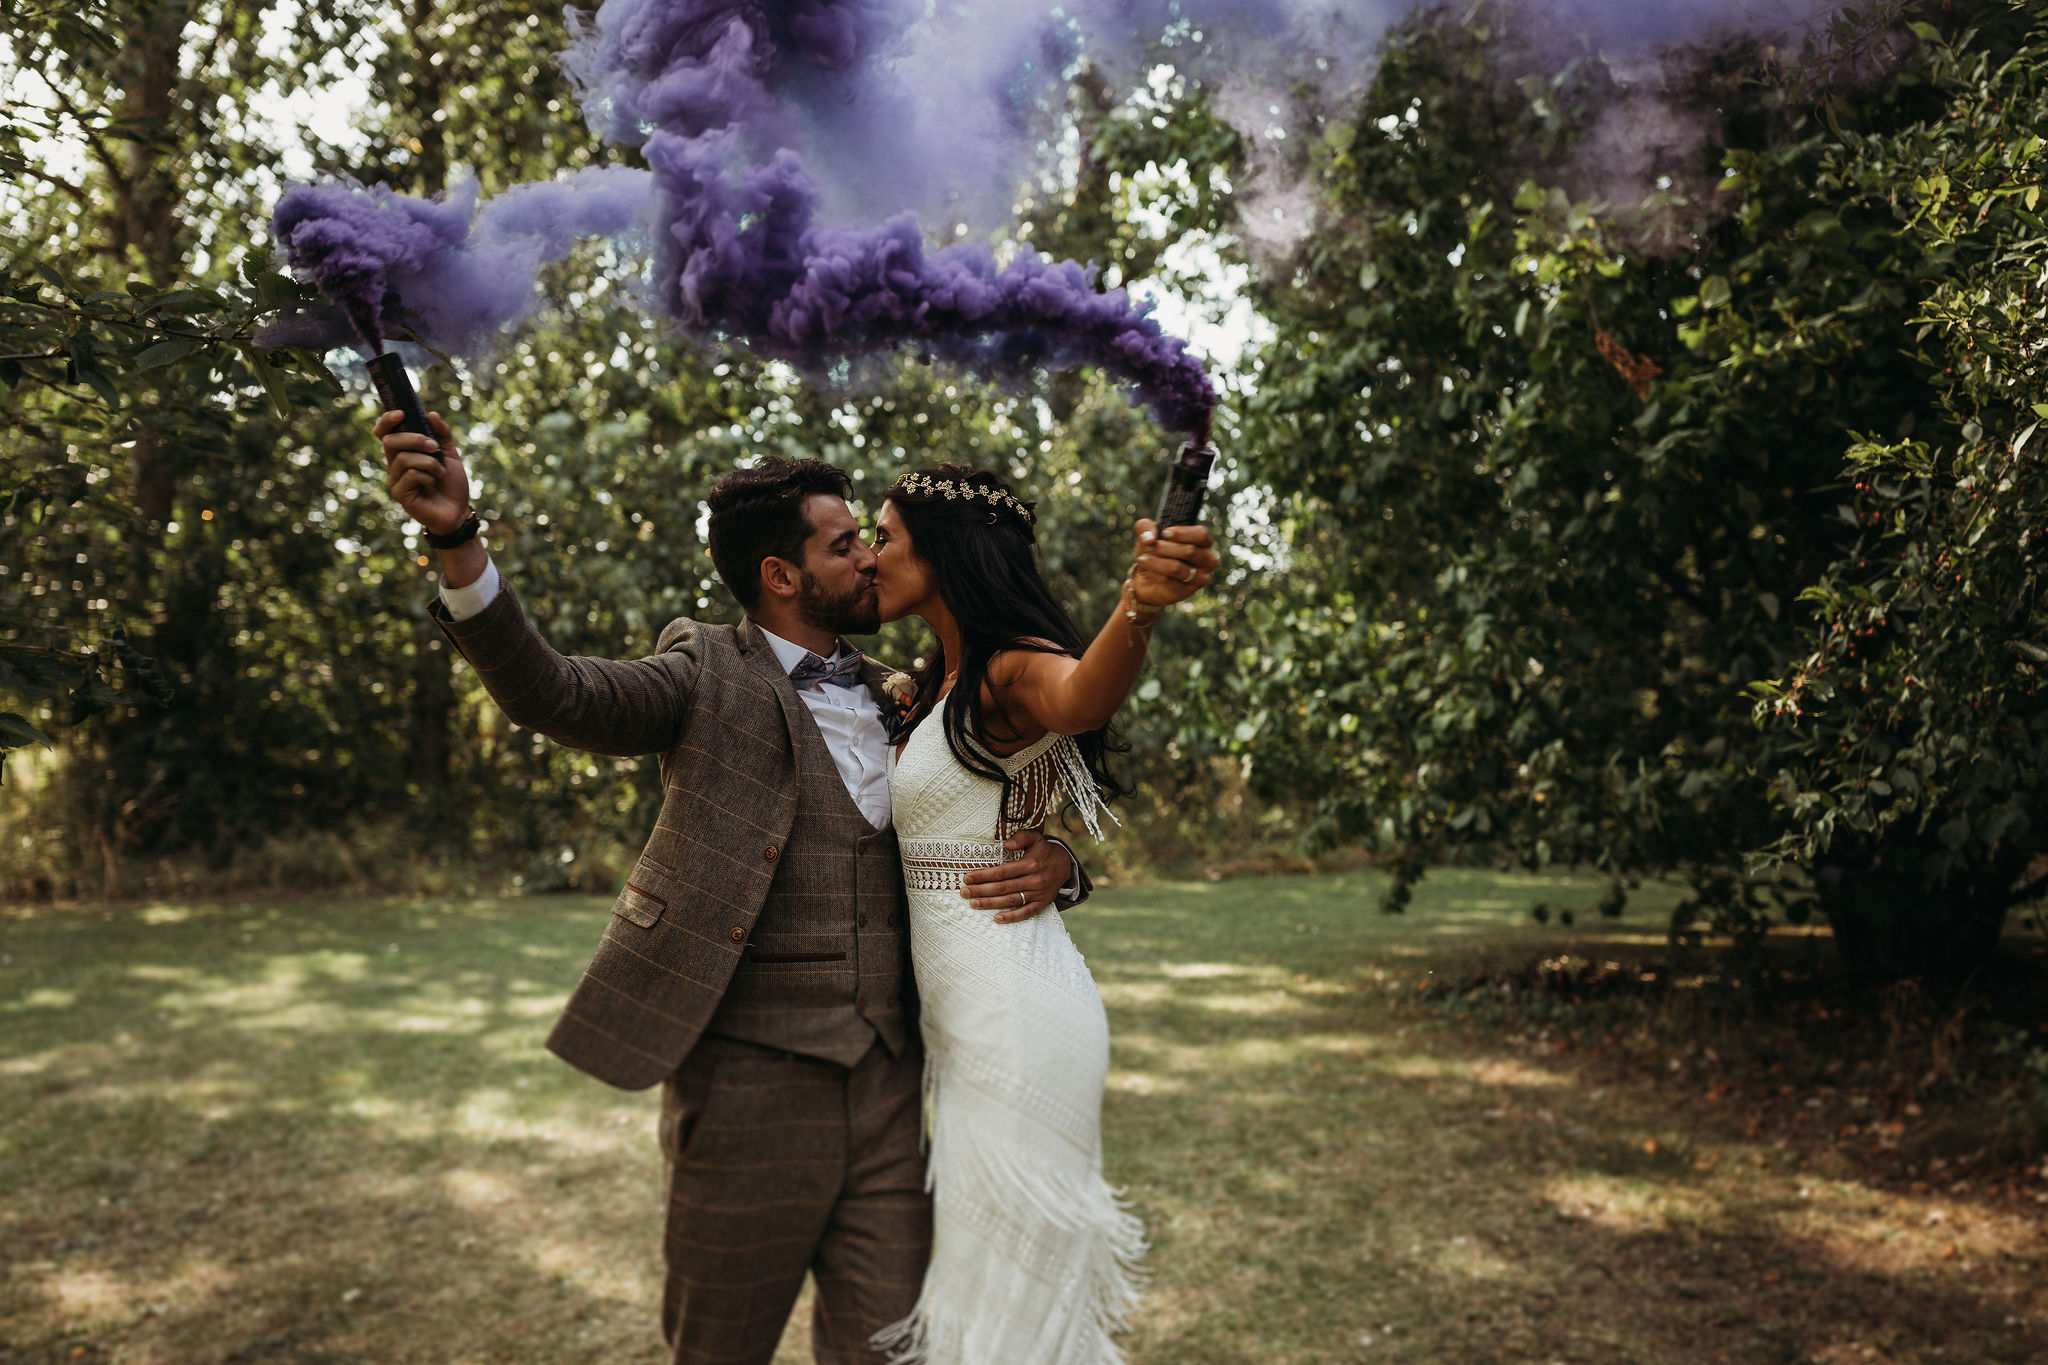 Bride and Groom with smoke